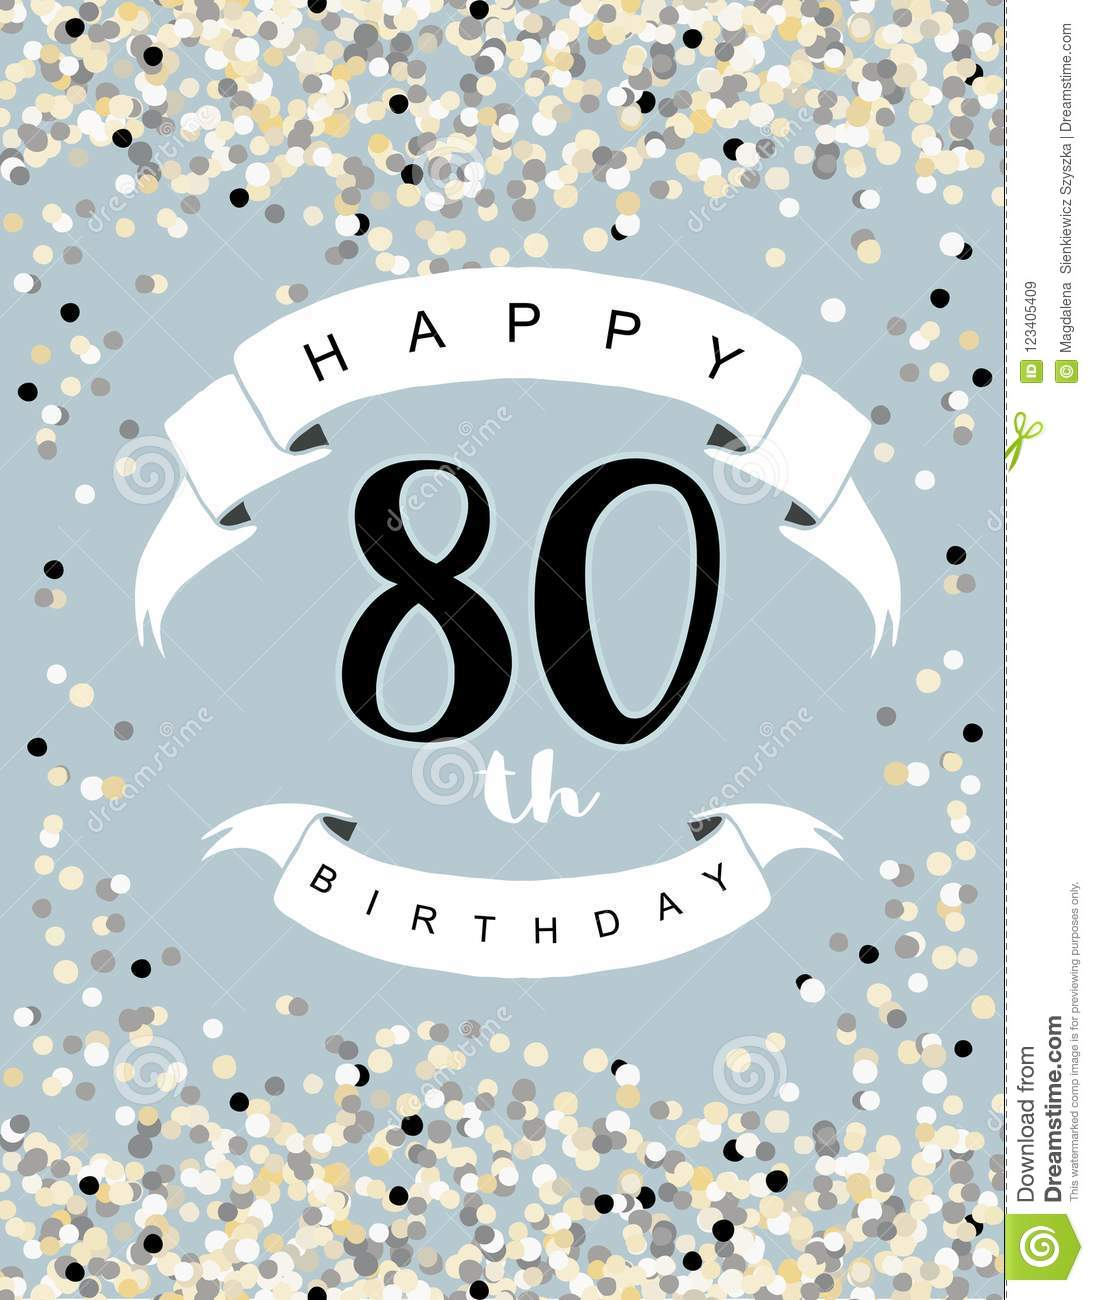 Happy 80th Birthday Vector Illustration Blue Background With Light Confetti White Ribbons And Black